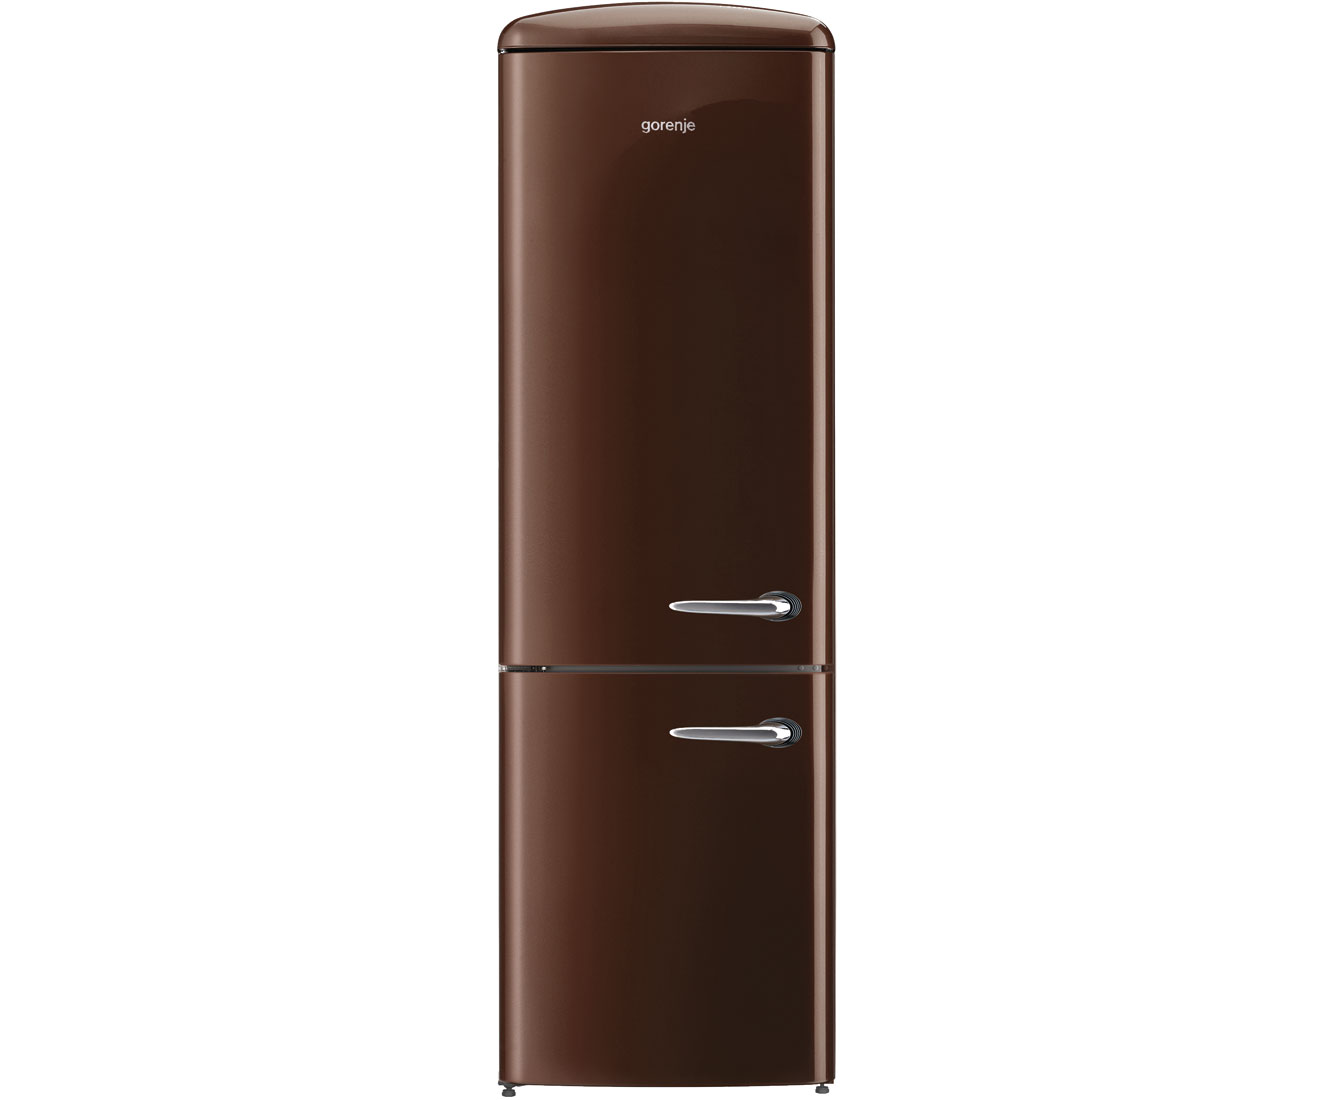 Gorenje Kühlschrank Gefrierkombination : Gorenje retro collection onrk 193 ch l kühl gefrierkombination mit